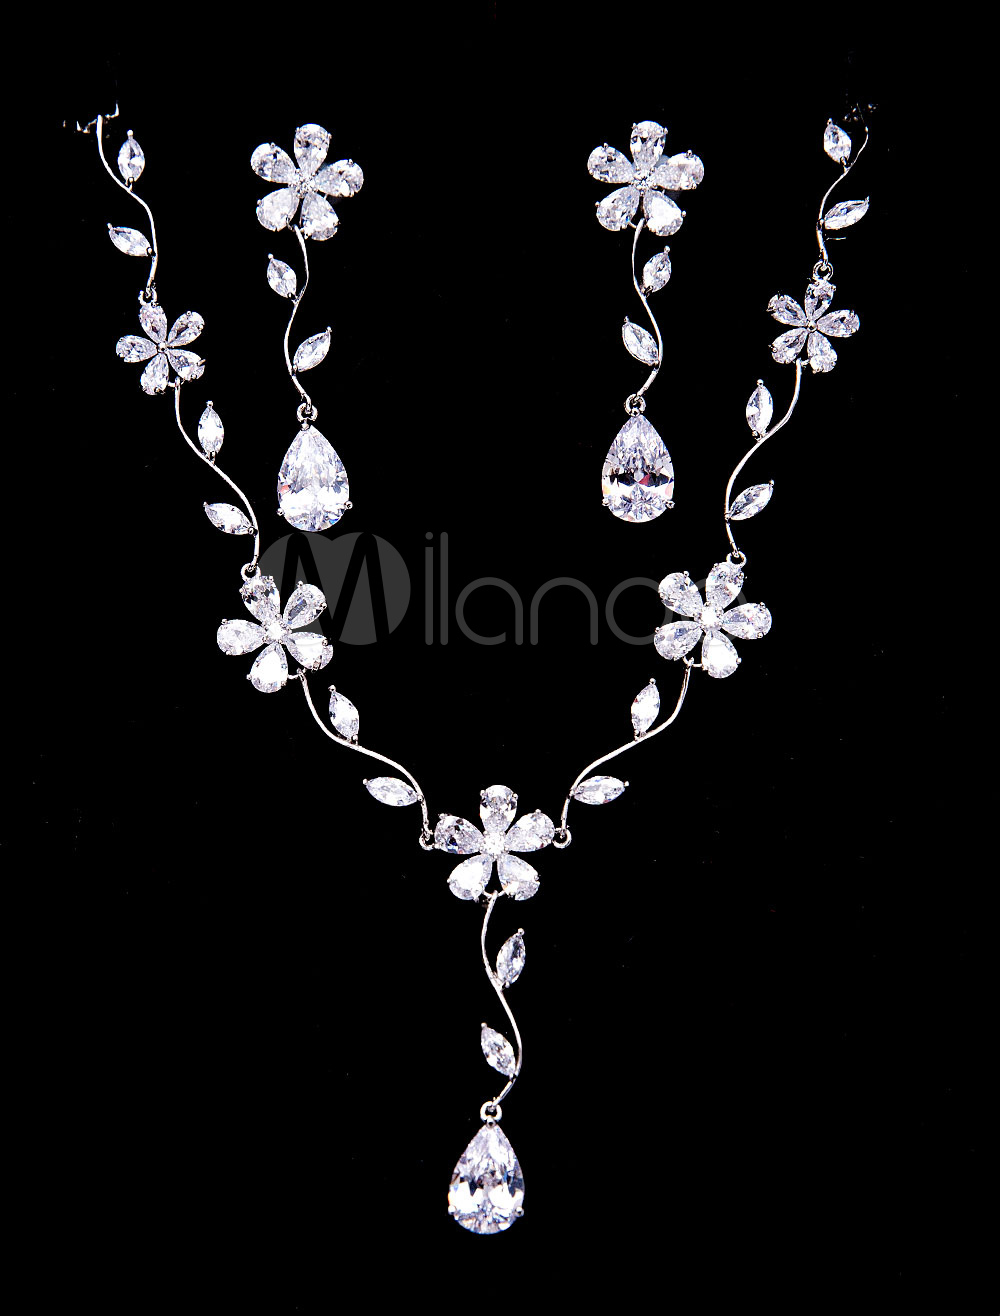 Silver Wedding Jewelry Beaded Zirconia Bridal Pendant Necklace Set With Dangle Earrings